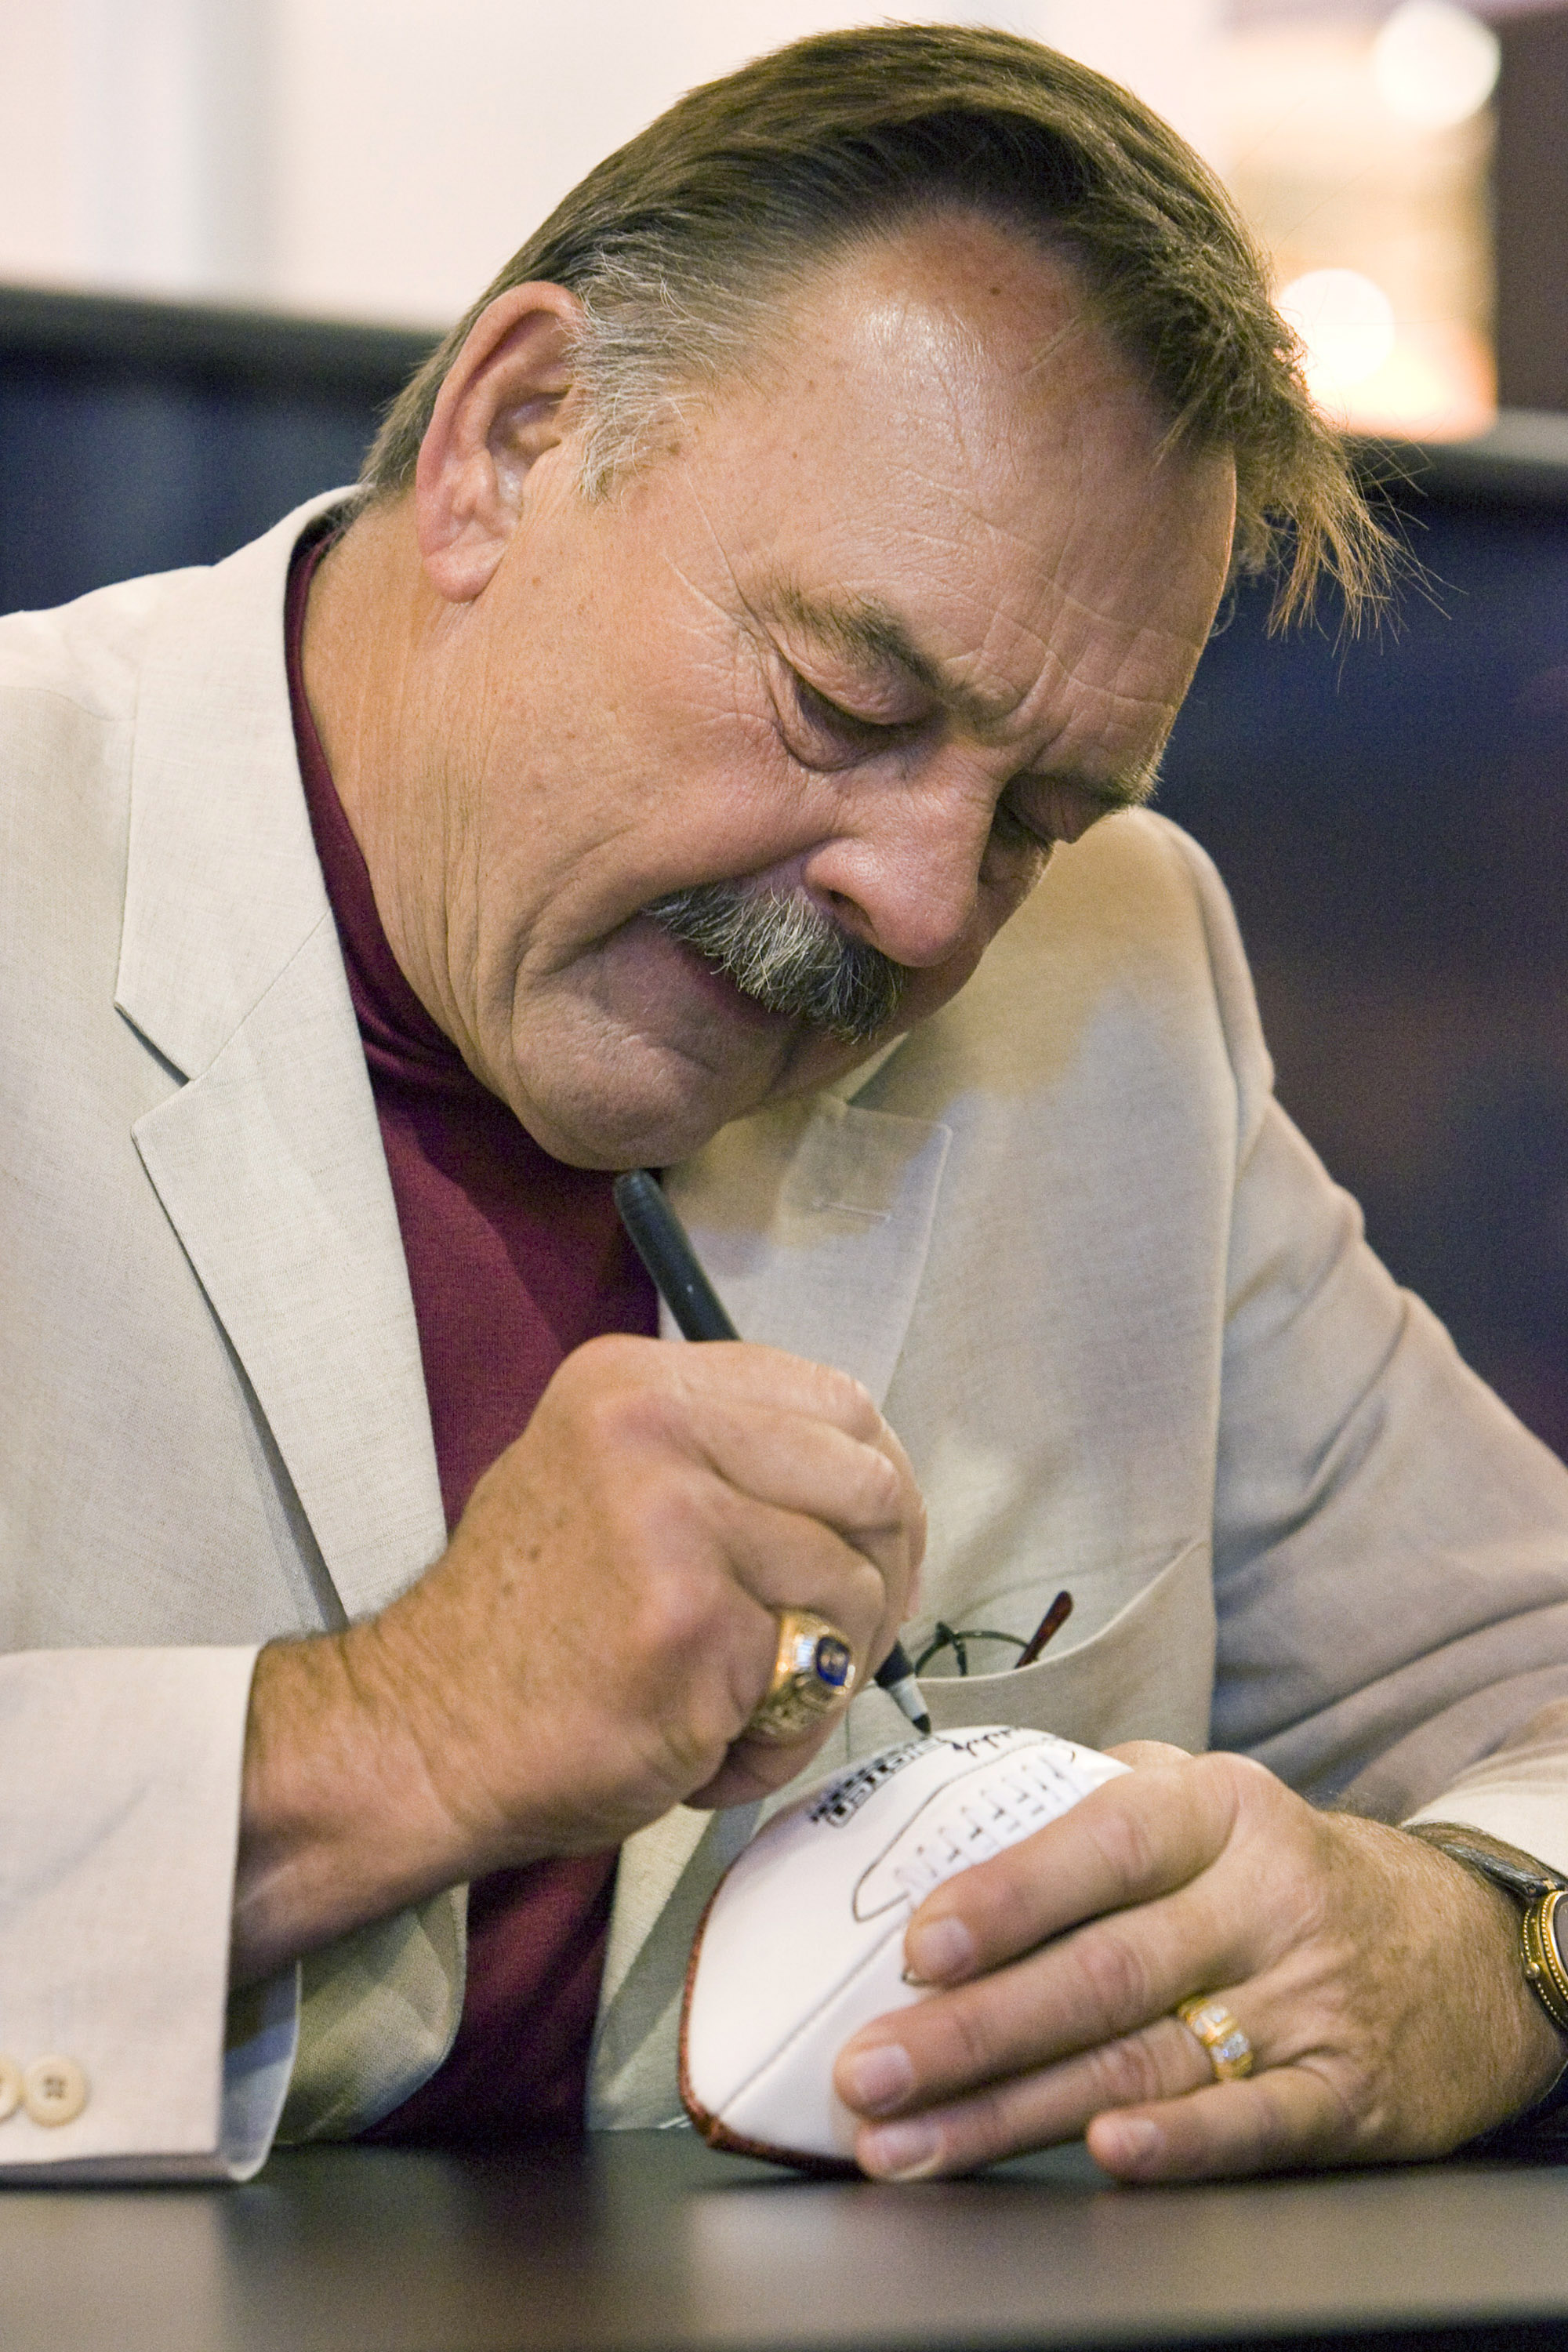 NEW ORLEANS - MAY 19: 2008 Pro Football Hall of Fame member and legendary Chicago Bears linebacker Dick Butkus takes time to sign footballs for fans in the Fox Cable Networks' booth at the The Cable Show in the Ernest N. Morial Convention Center on May 19